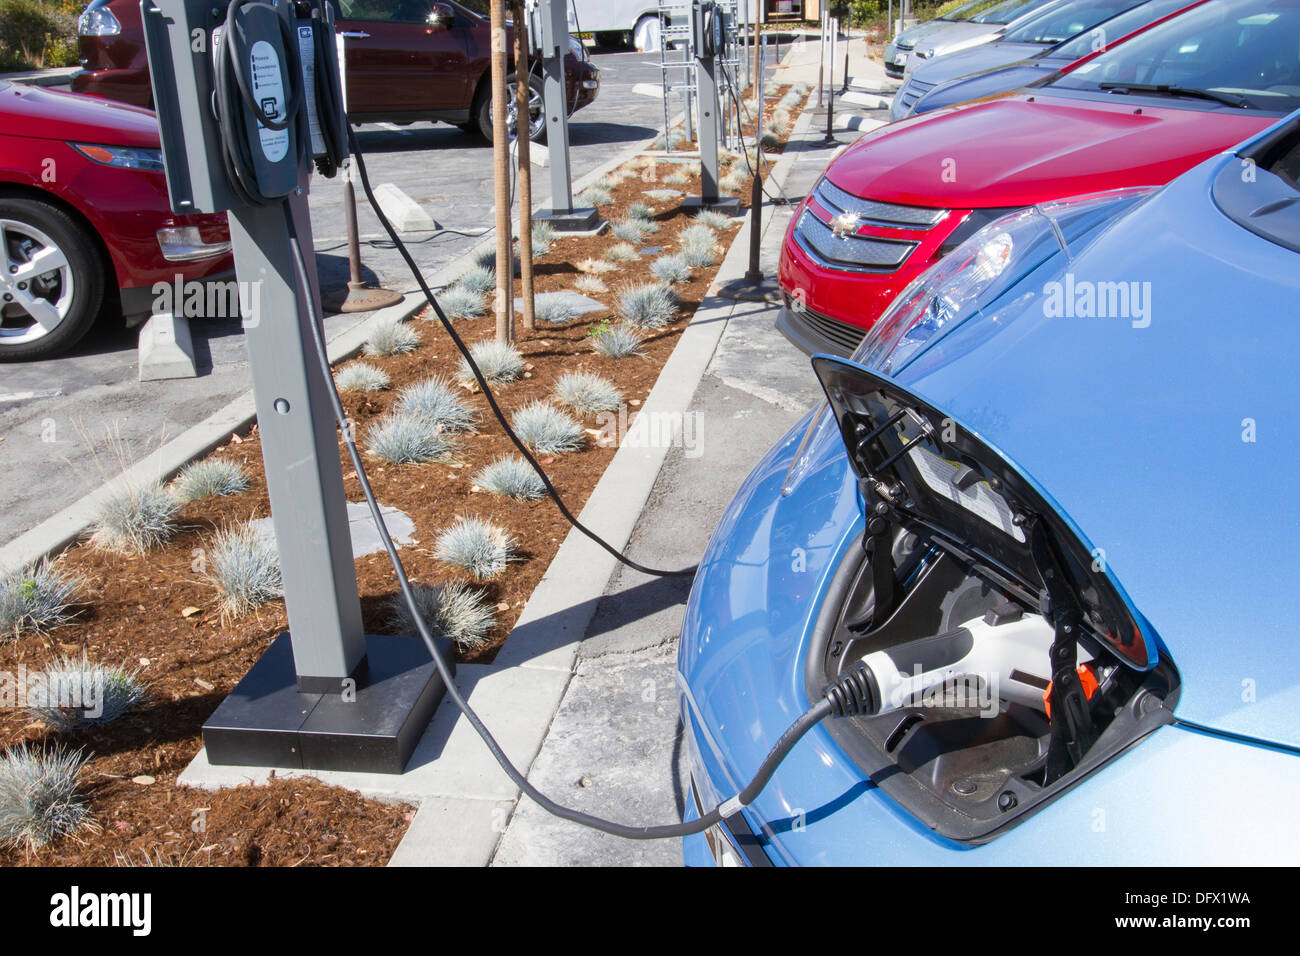 Plug-in electric cars plugged into an EV charging station to charge their batteries in a workplace parking lot - Stock Image